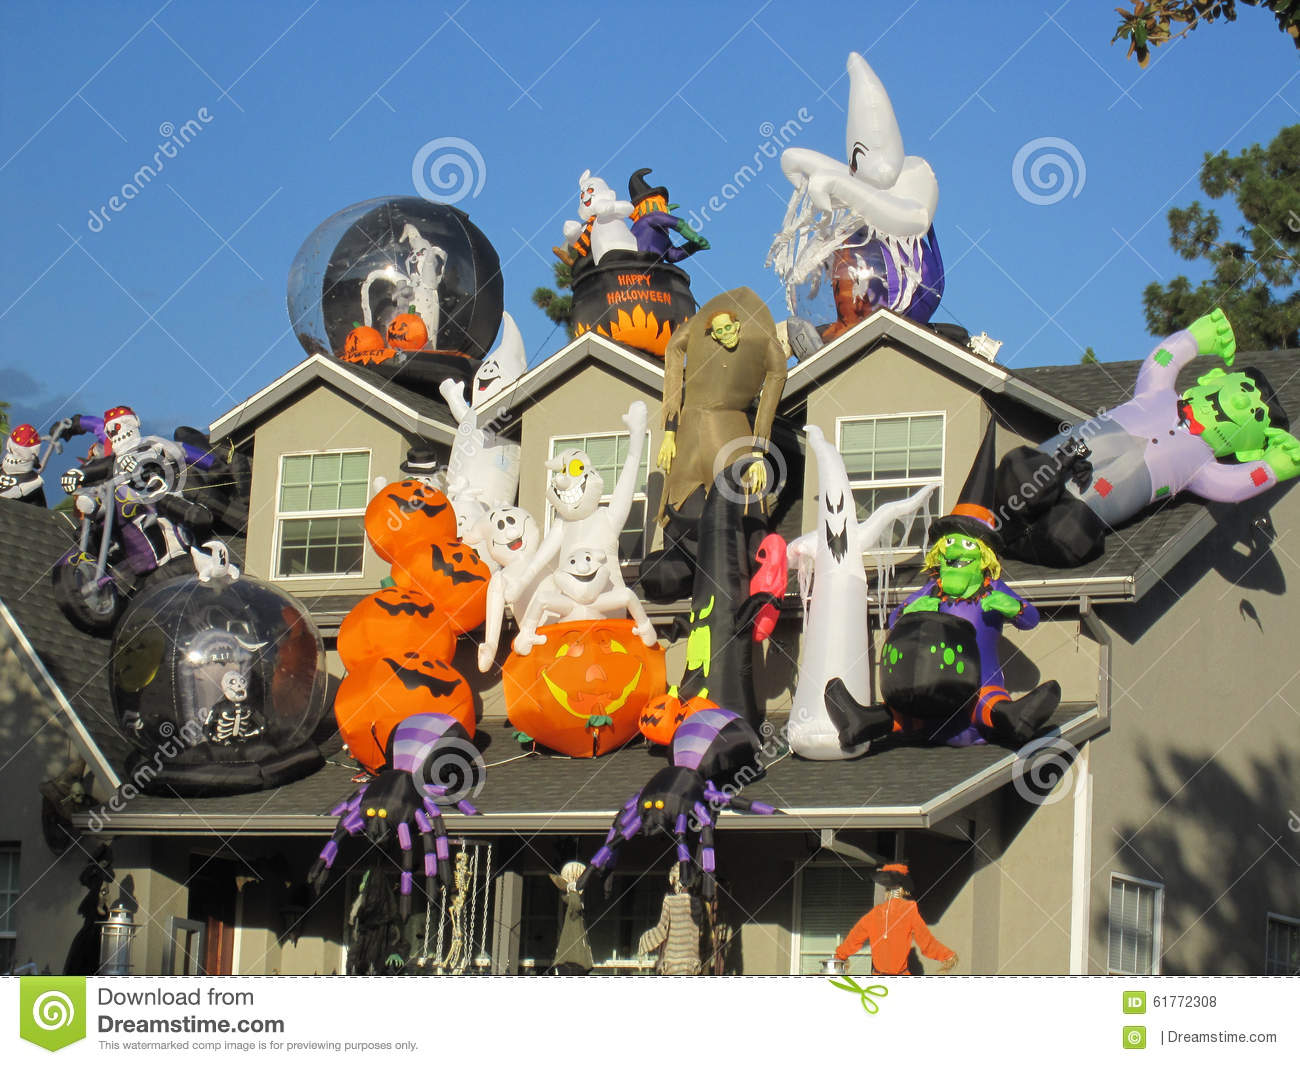 Halloween Roof Decorations